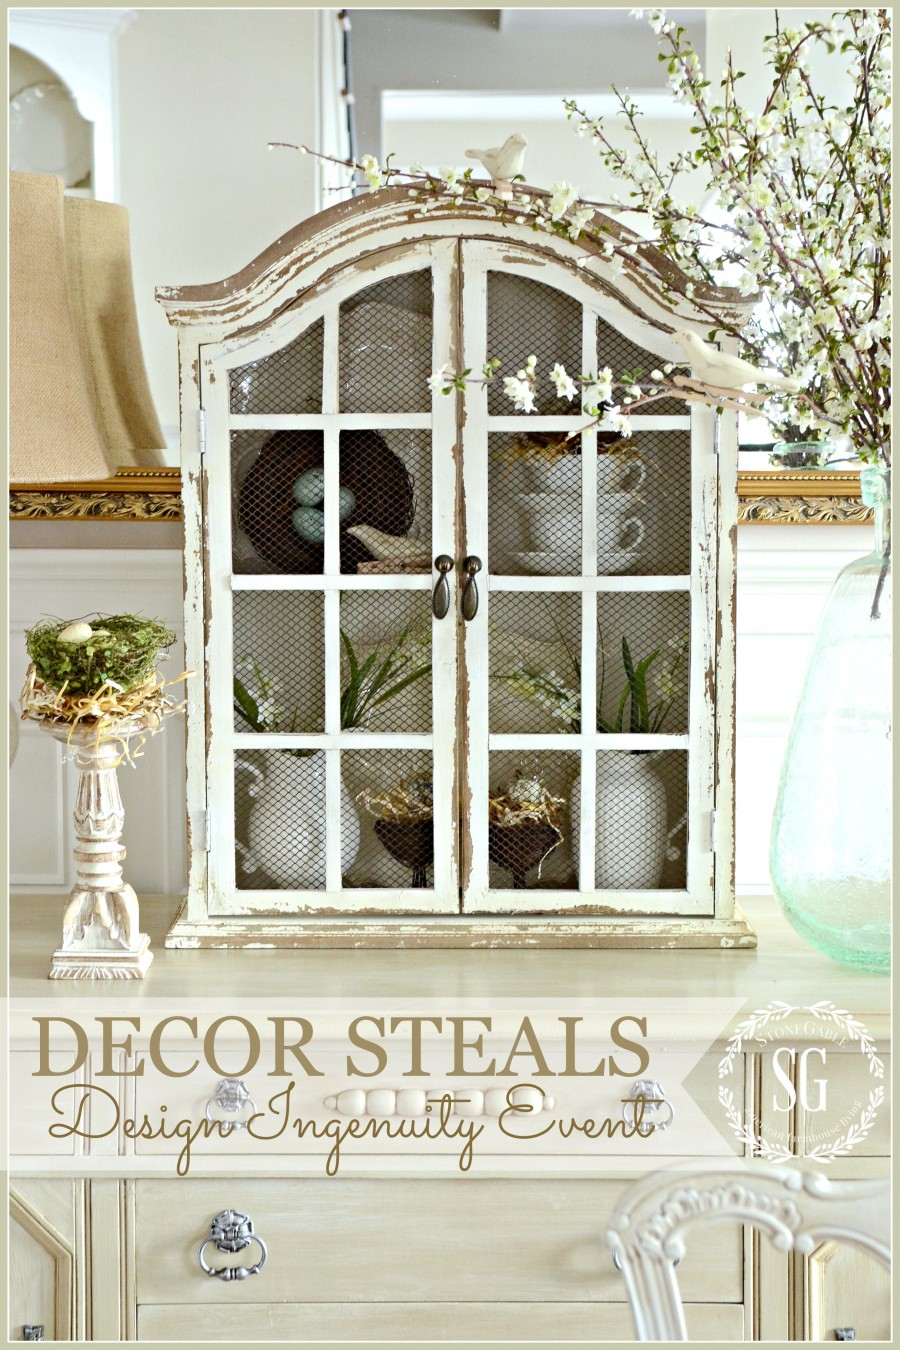 DECOR STEALS DESIGN INGENUITY EVENT... SPRING CUPBOARD - StoneGable